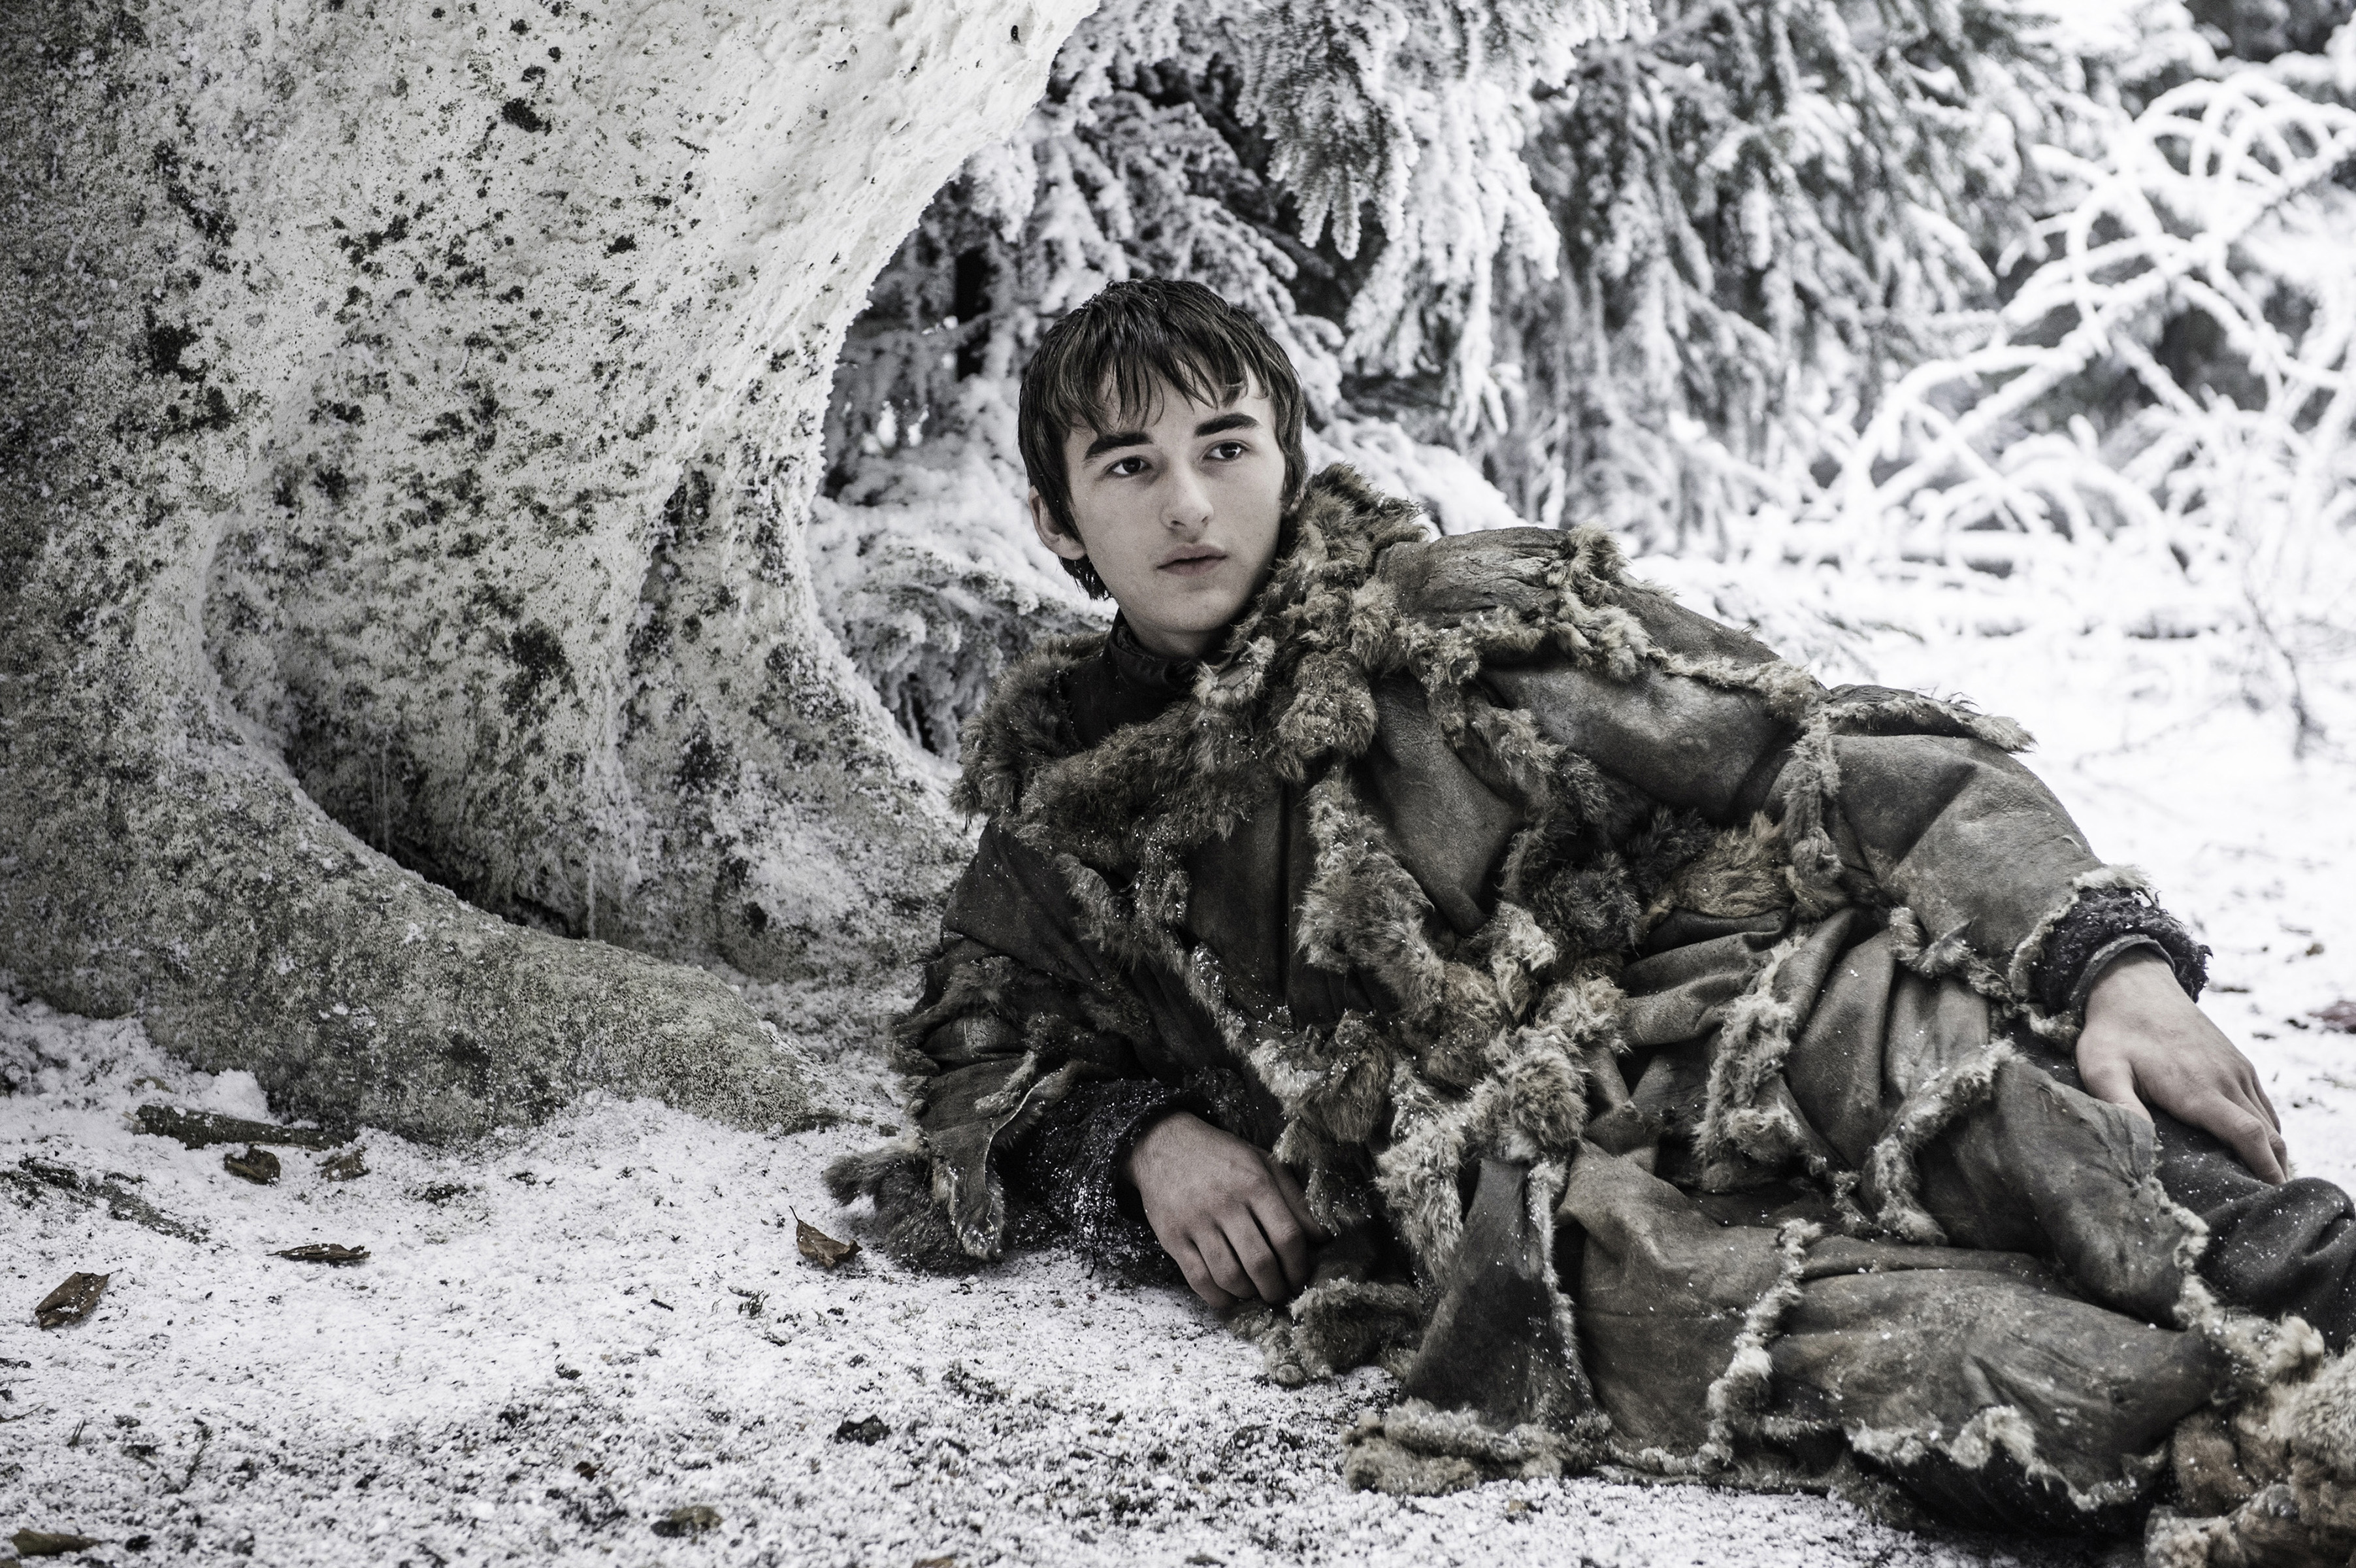 Isaac Hempstead Wright in Game of Thrones season 6, episode 10.